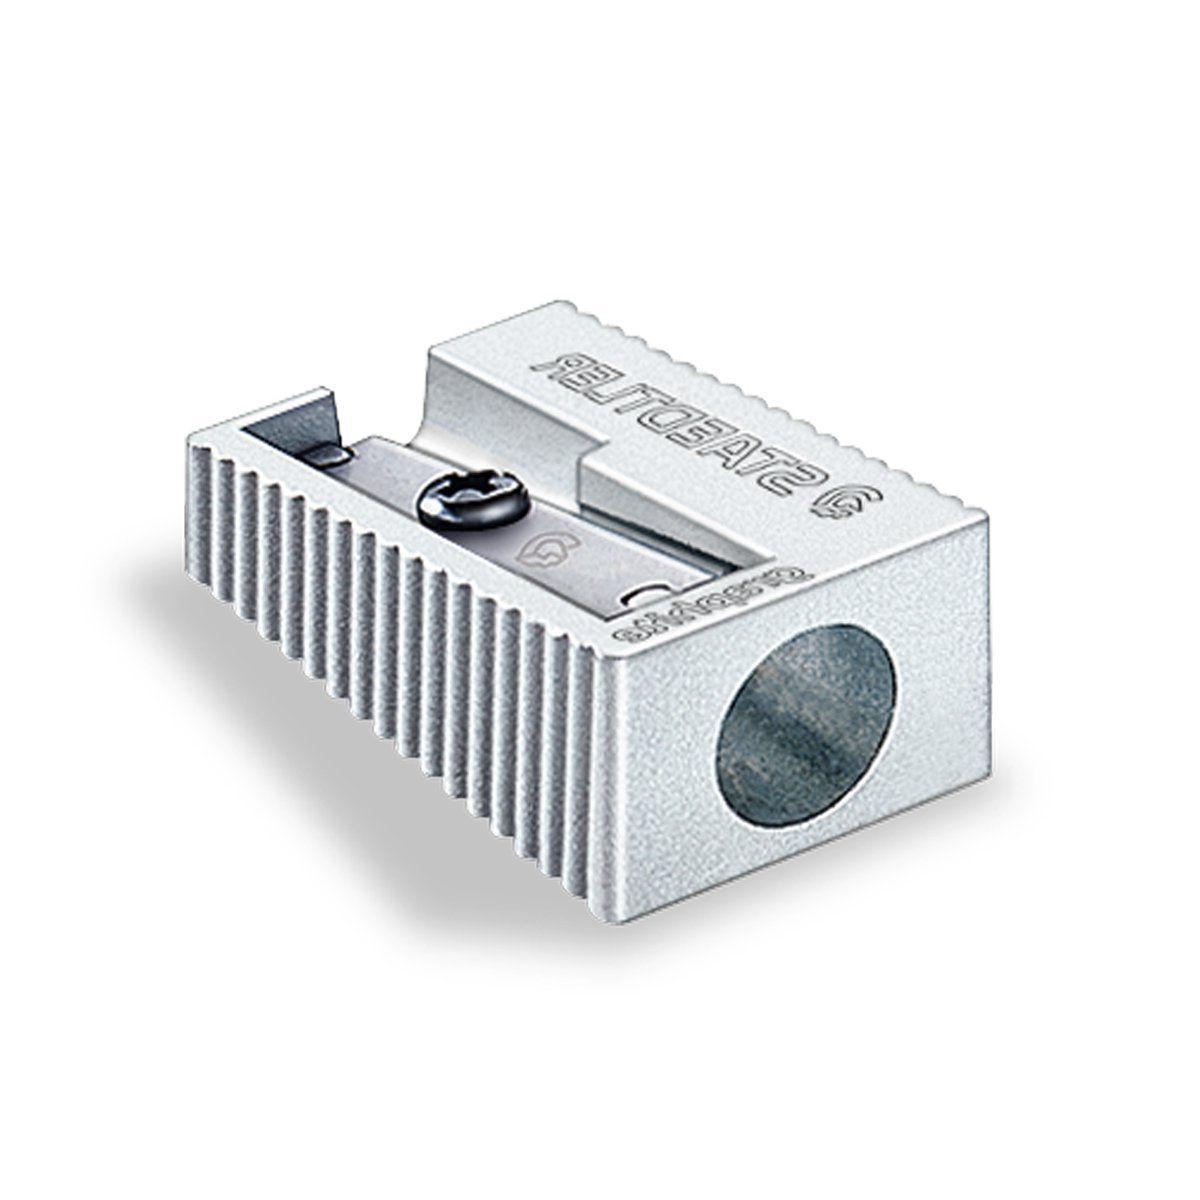 STAEDTLER Single Sharpener 510-10